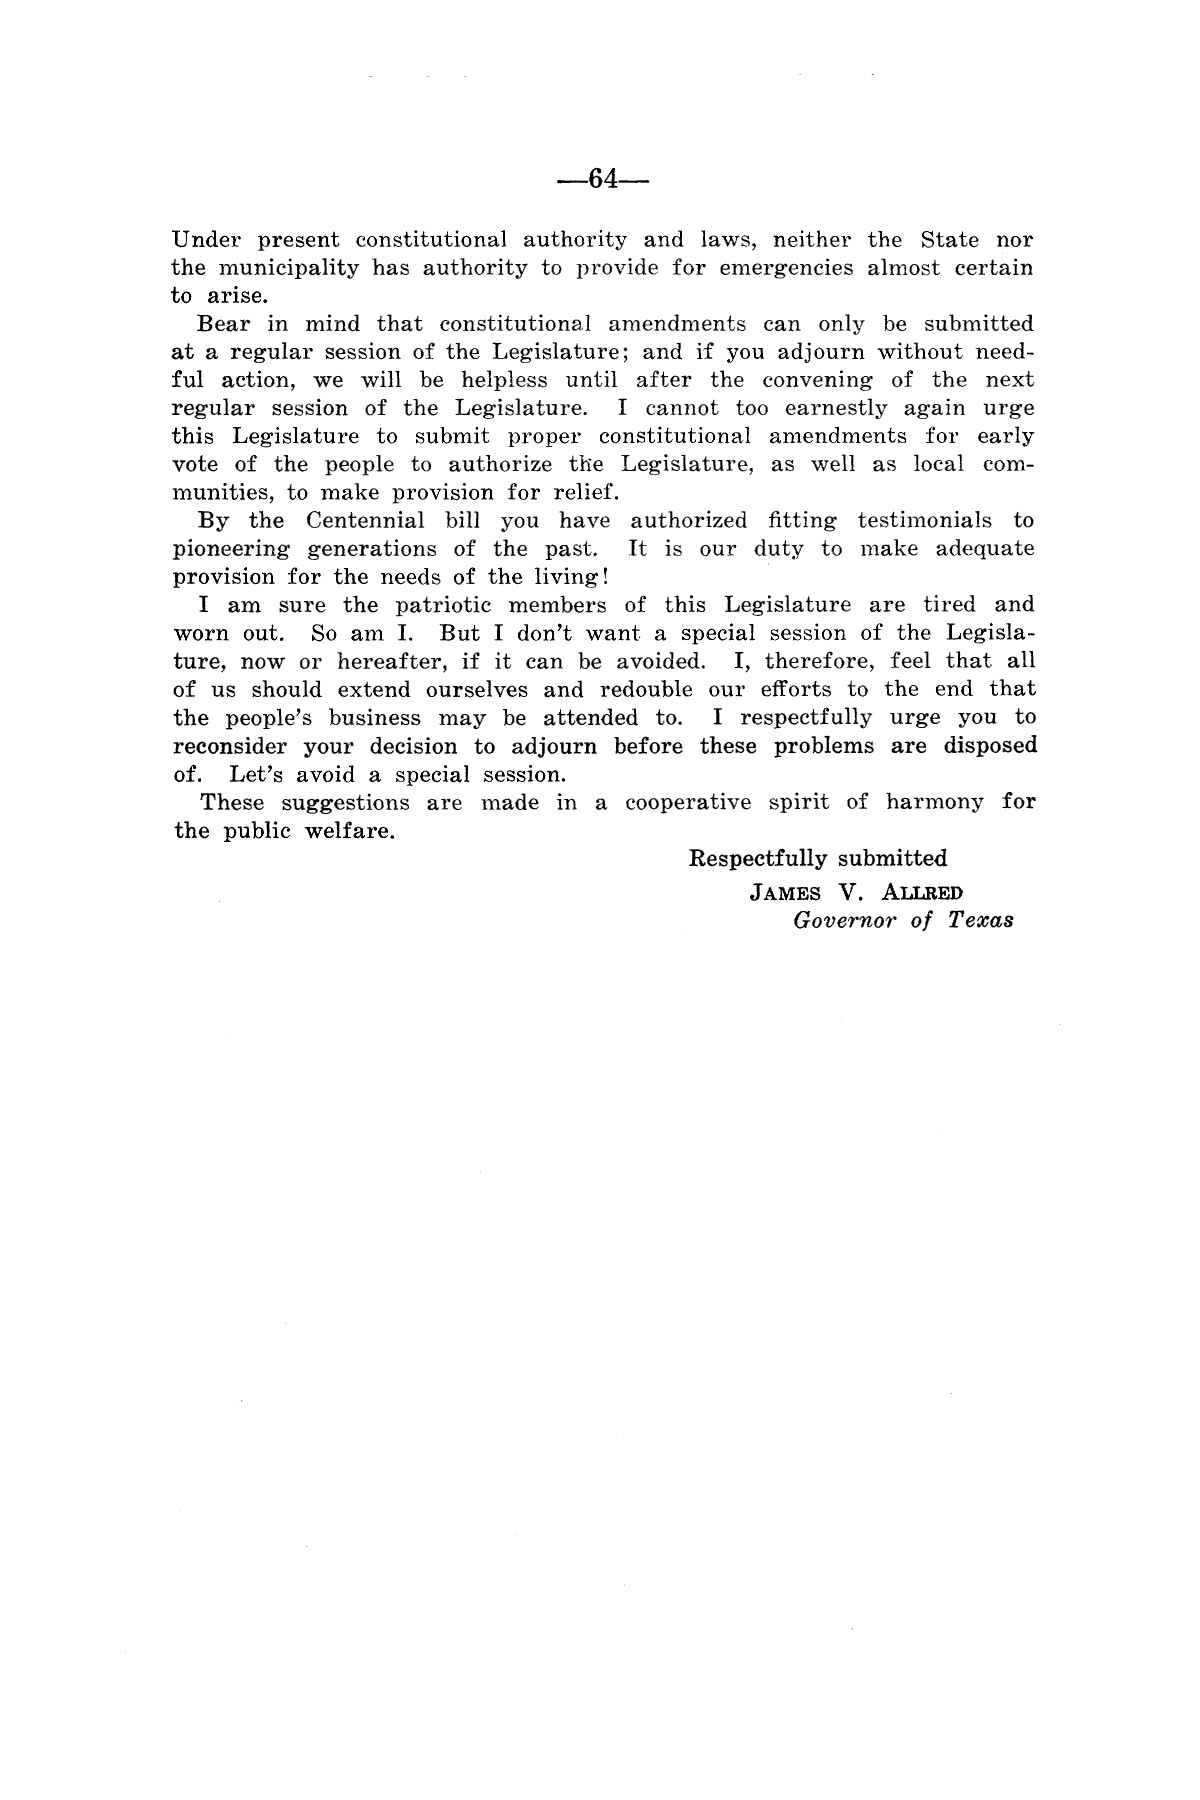 Legislative Messages of Hon. James V. Allred, Governor of Texas 1935-1939                                                                                                      [Sequence #]: 63 of 263